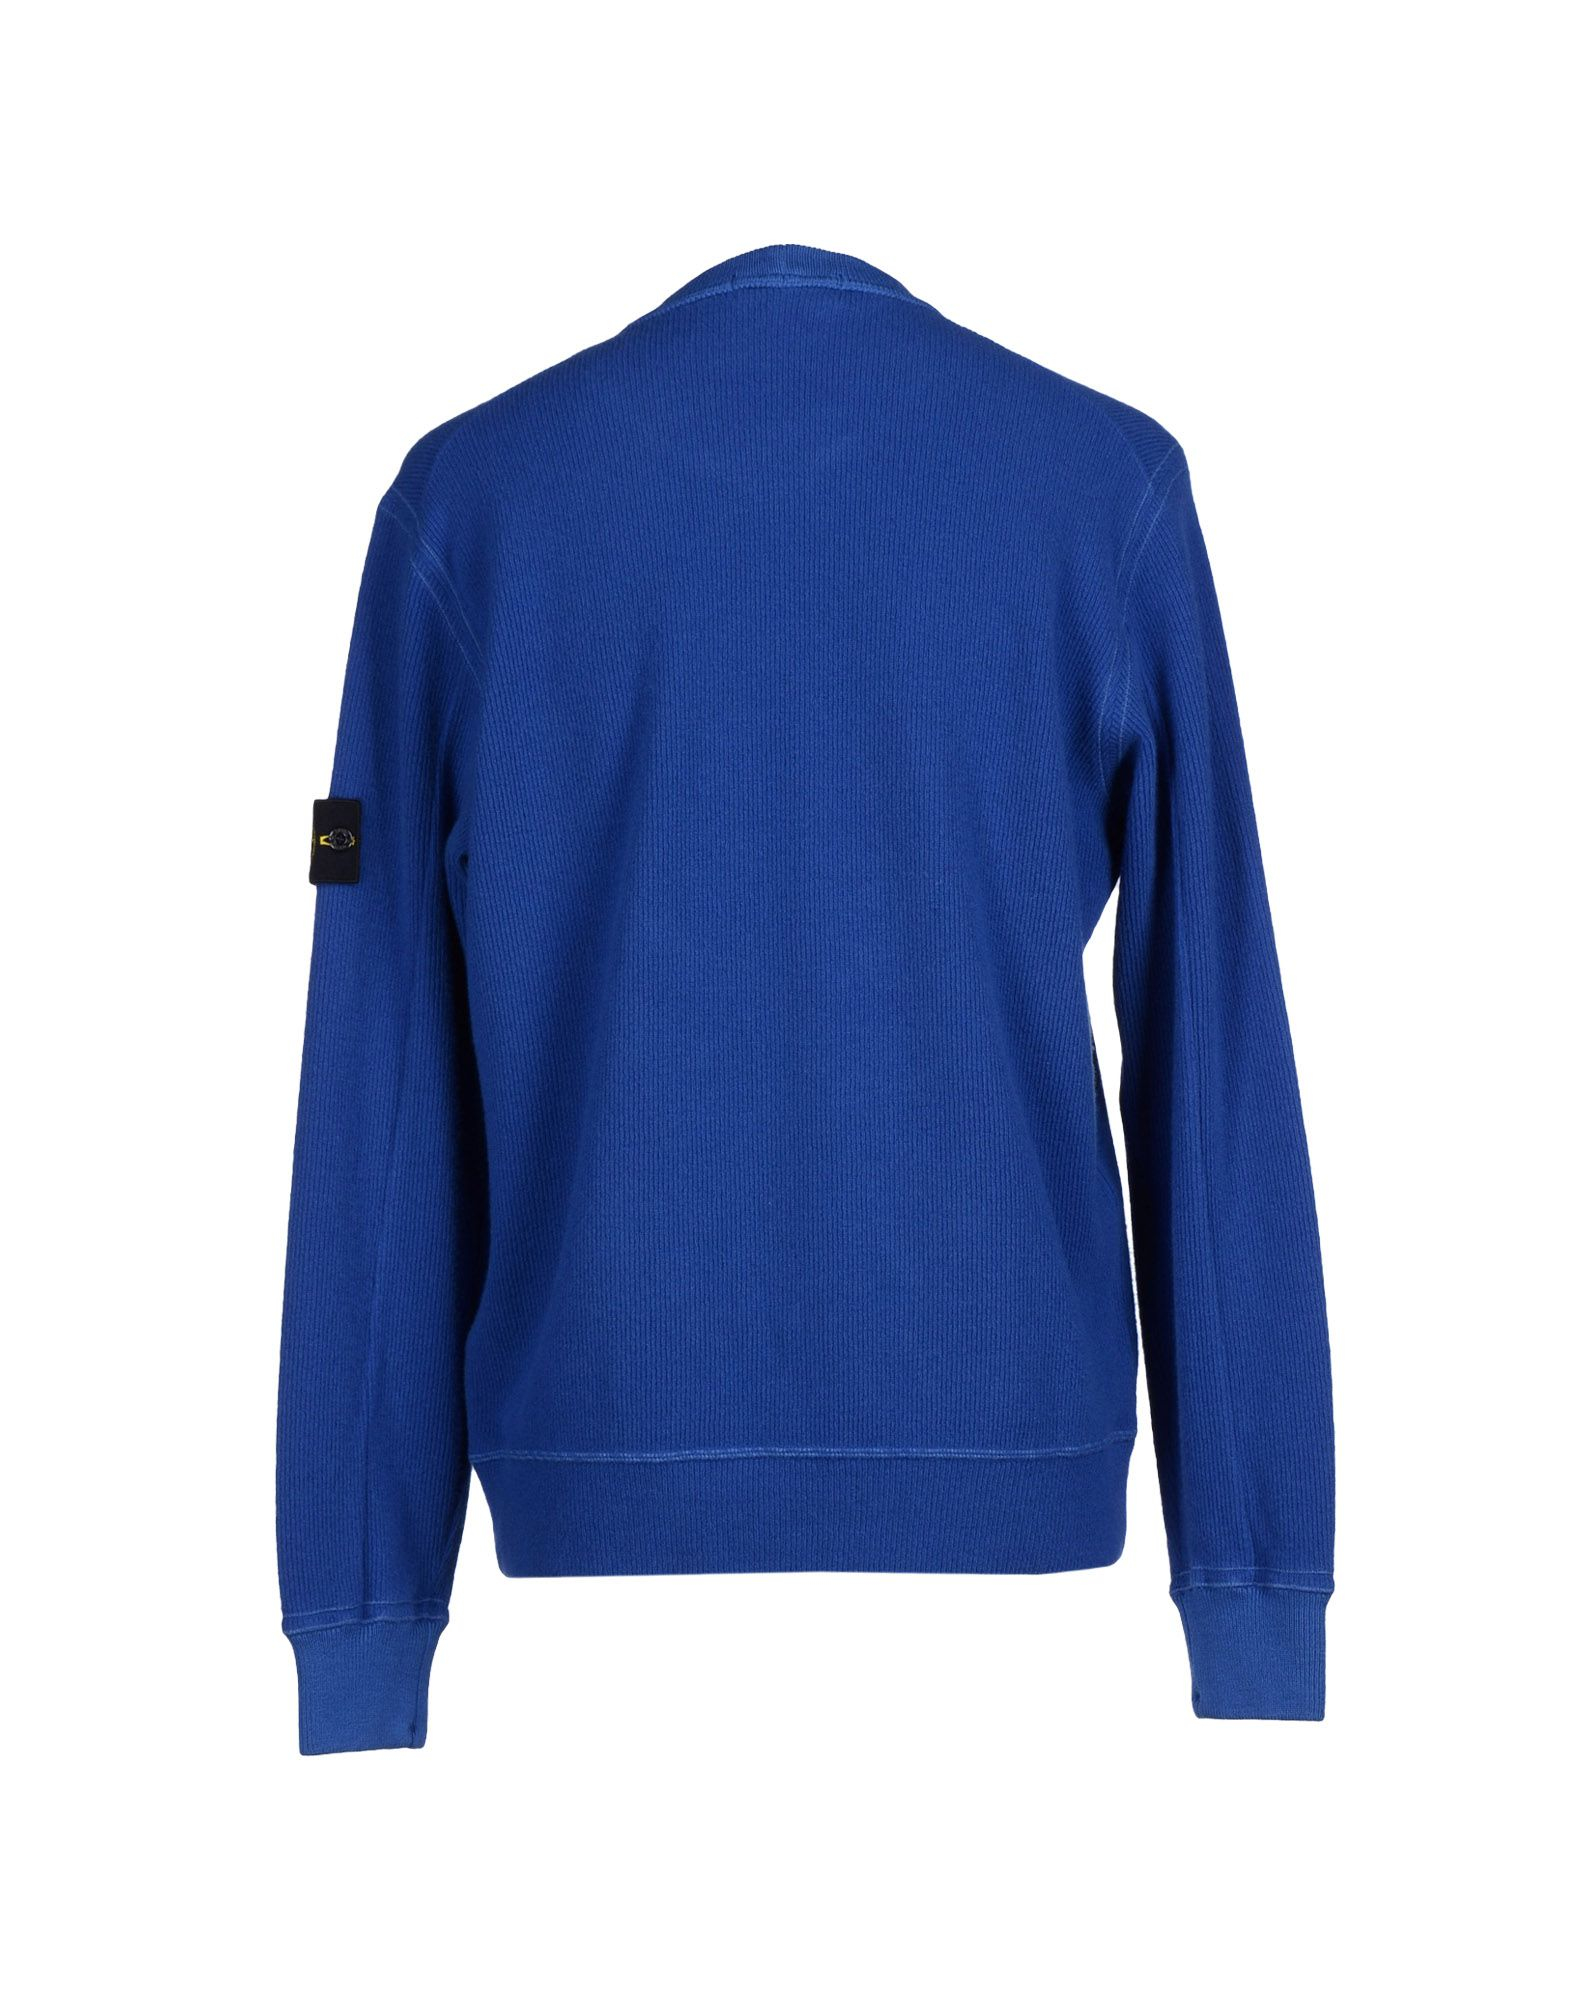 Find great deals on eBay for stone island jumper blue. Shop with confidence.